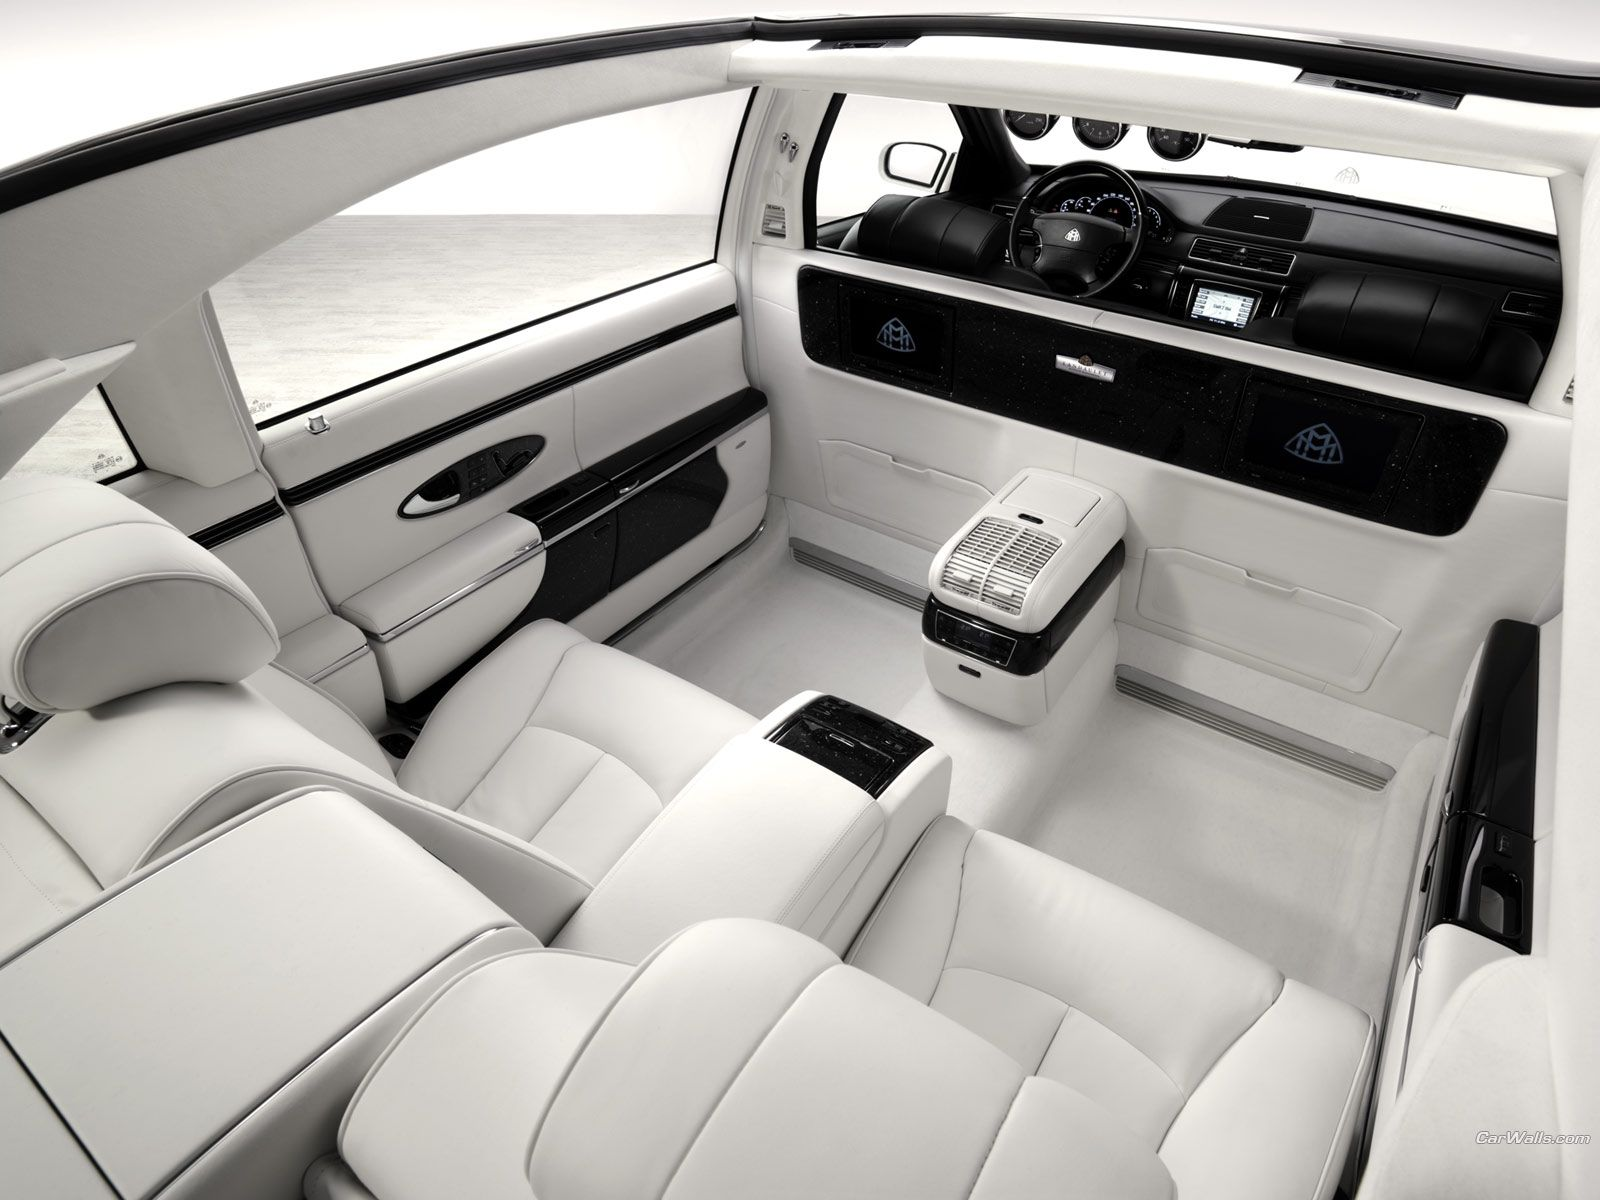 Maybach Laundaulet interior. Recline on white leather.